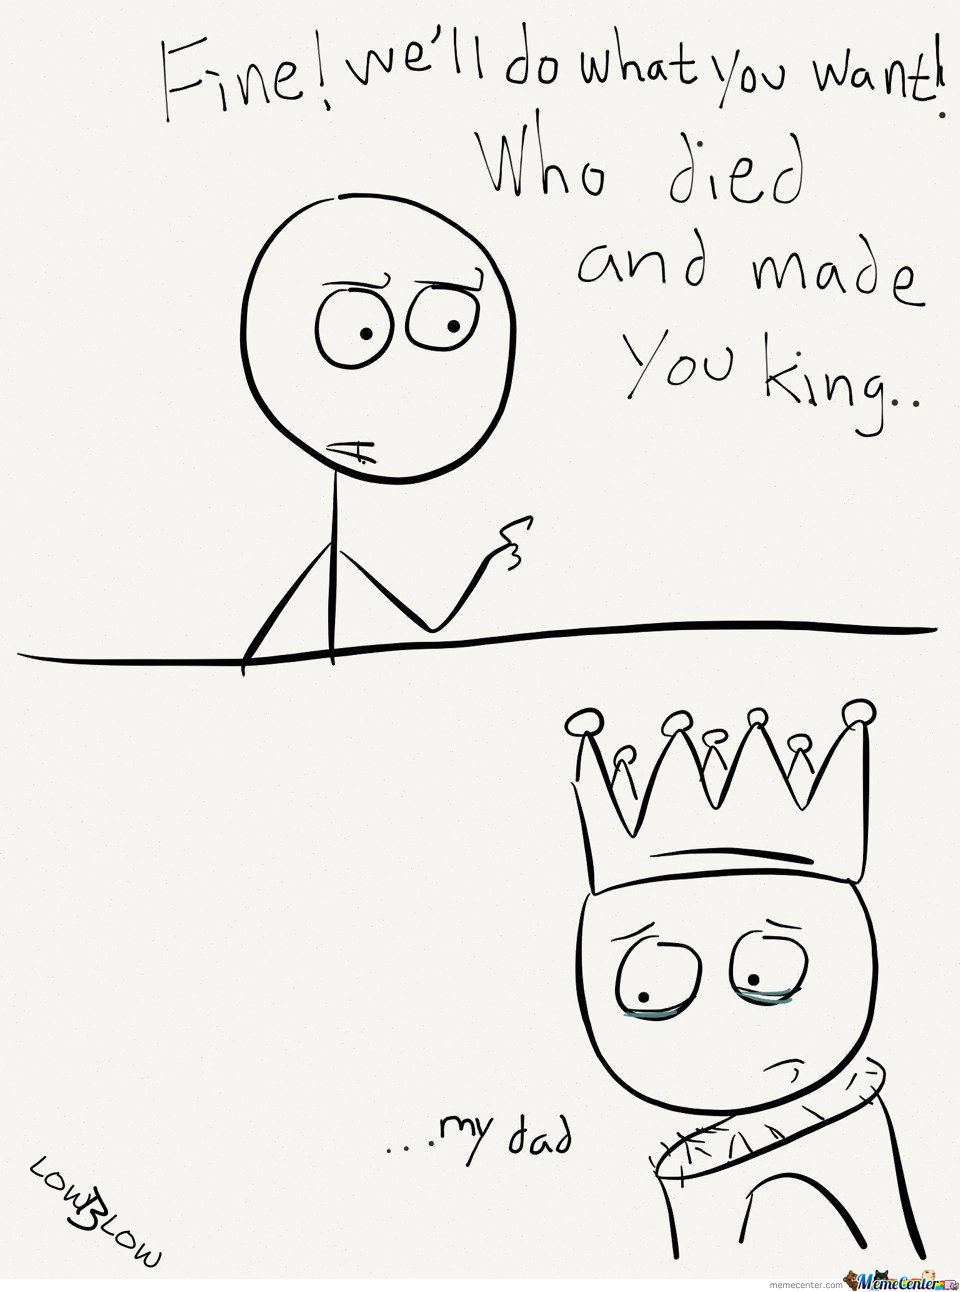 Who Died And Made U King?